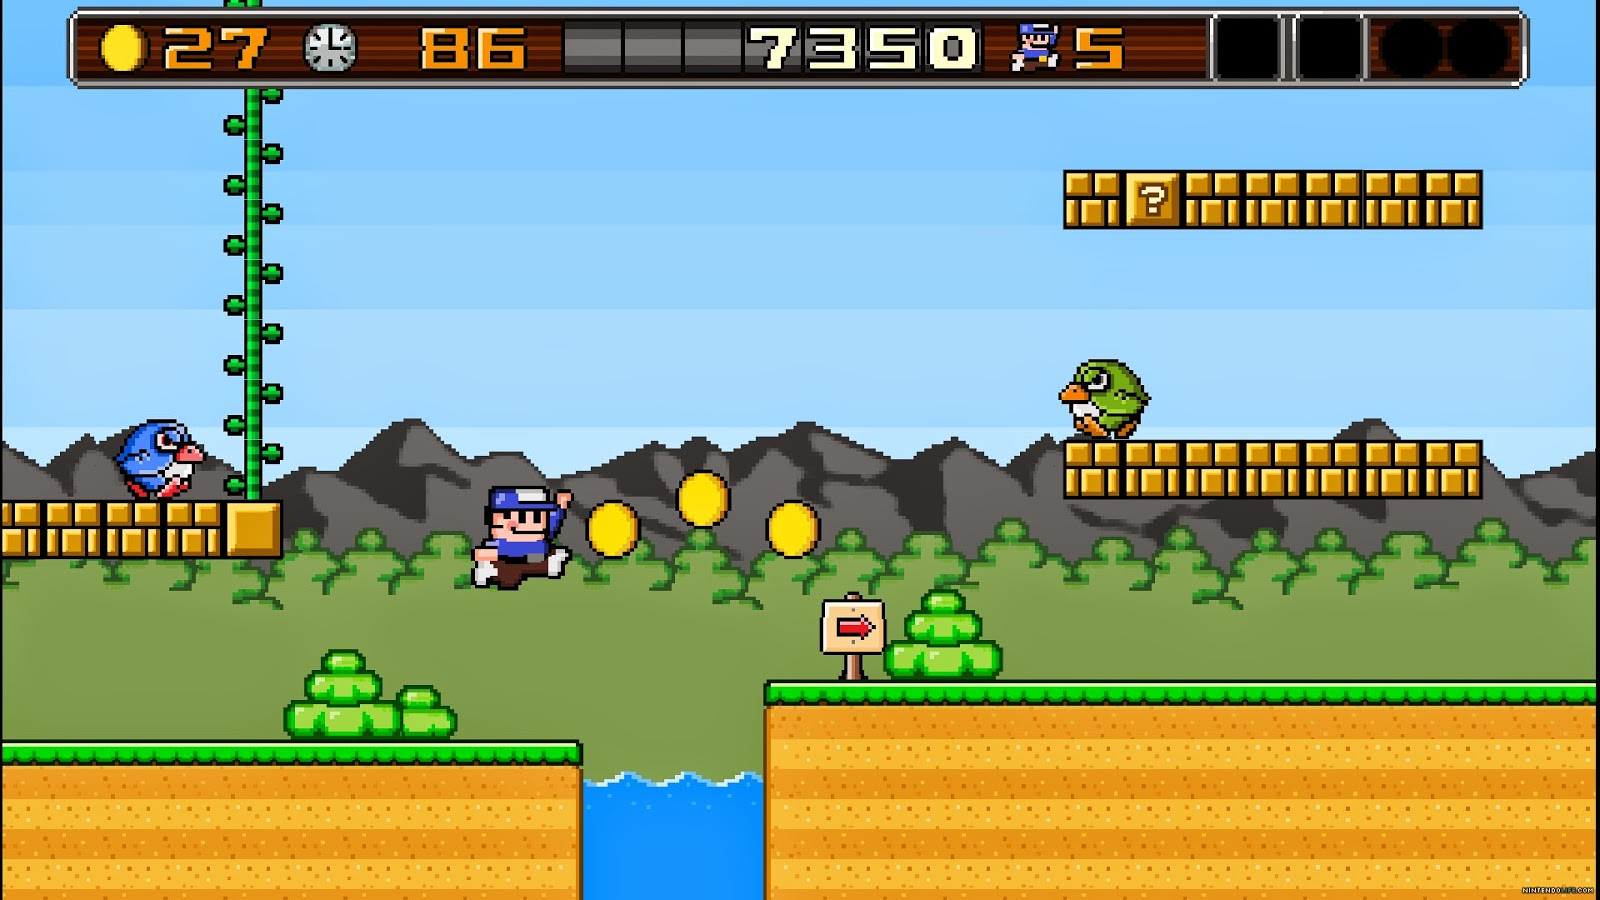 Review: 8BitBoy (PC) - Digitally Downloaded